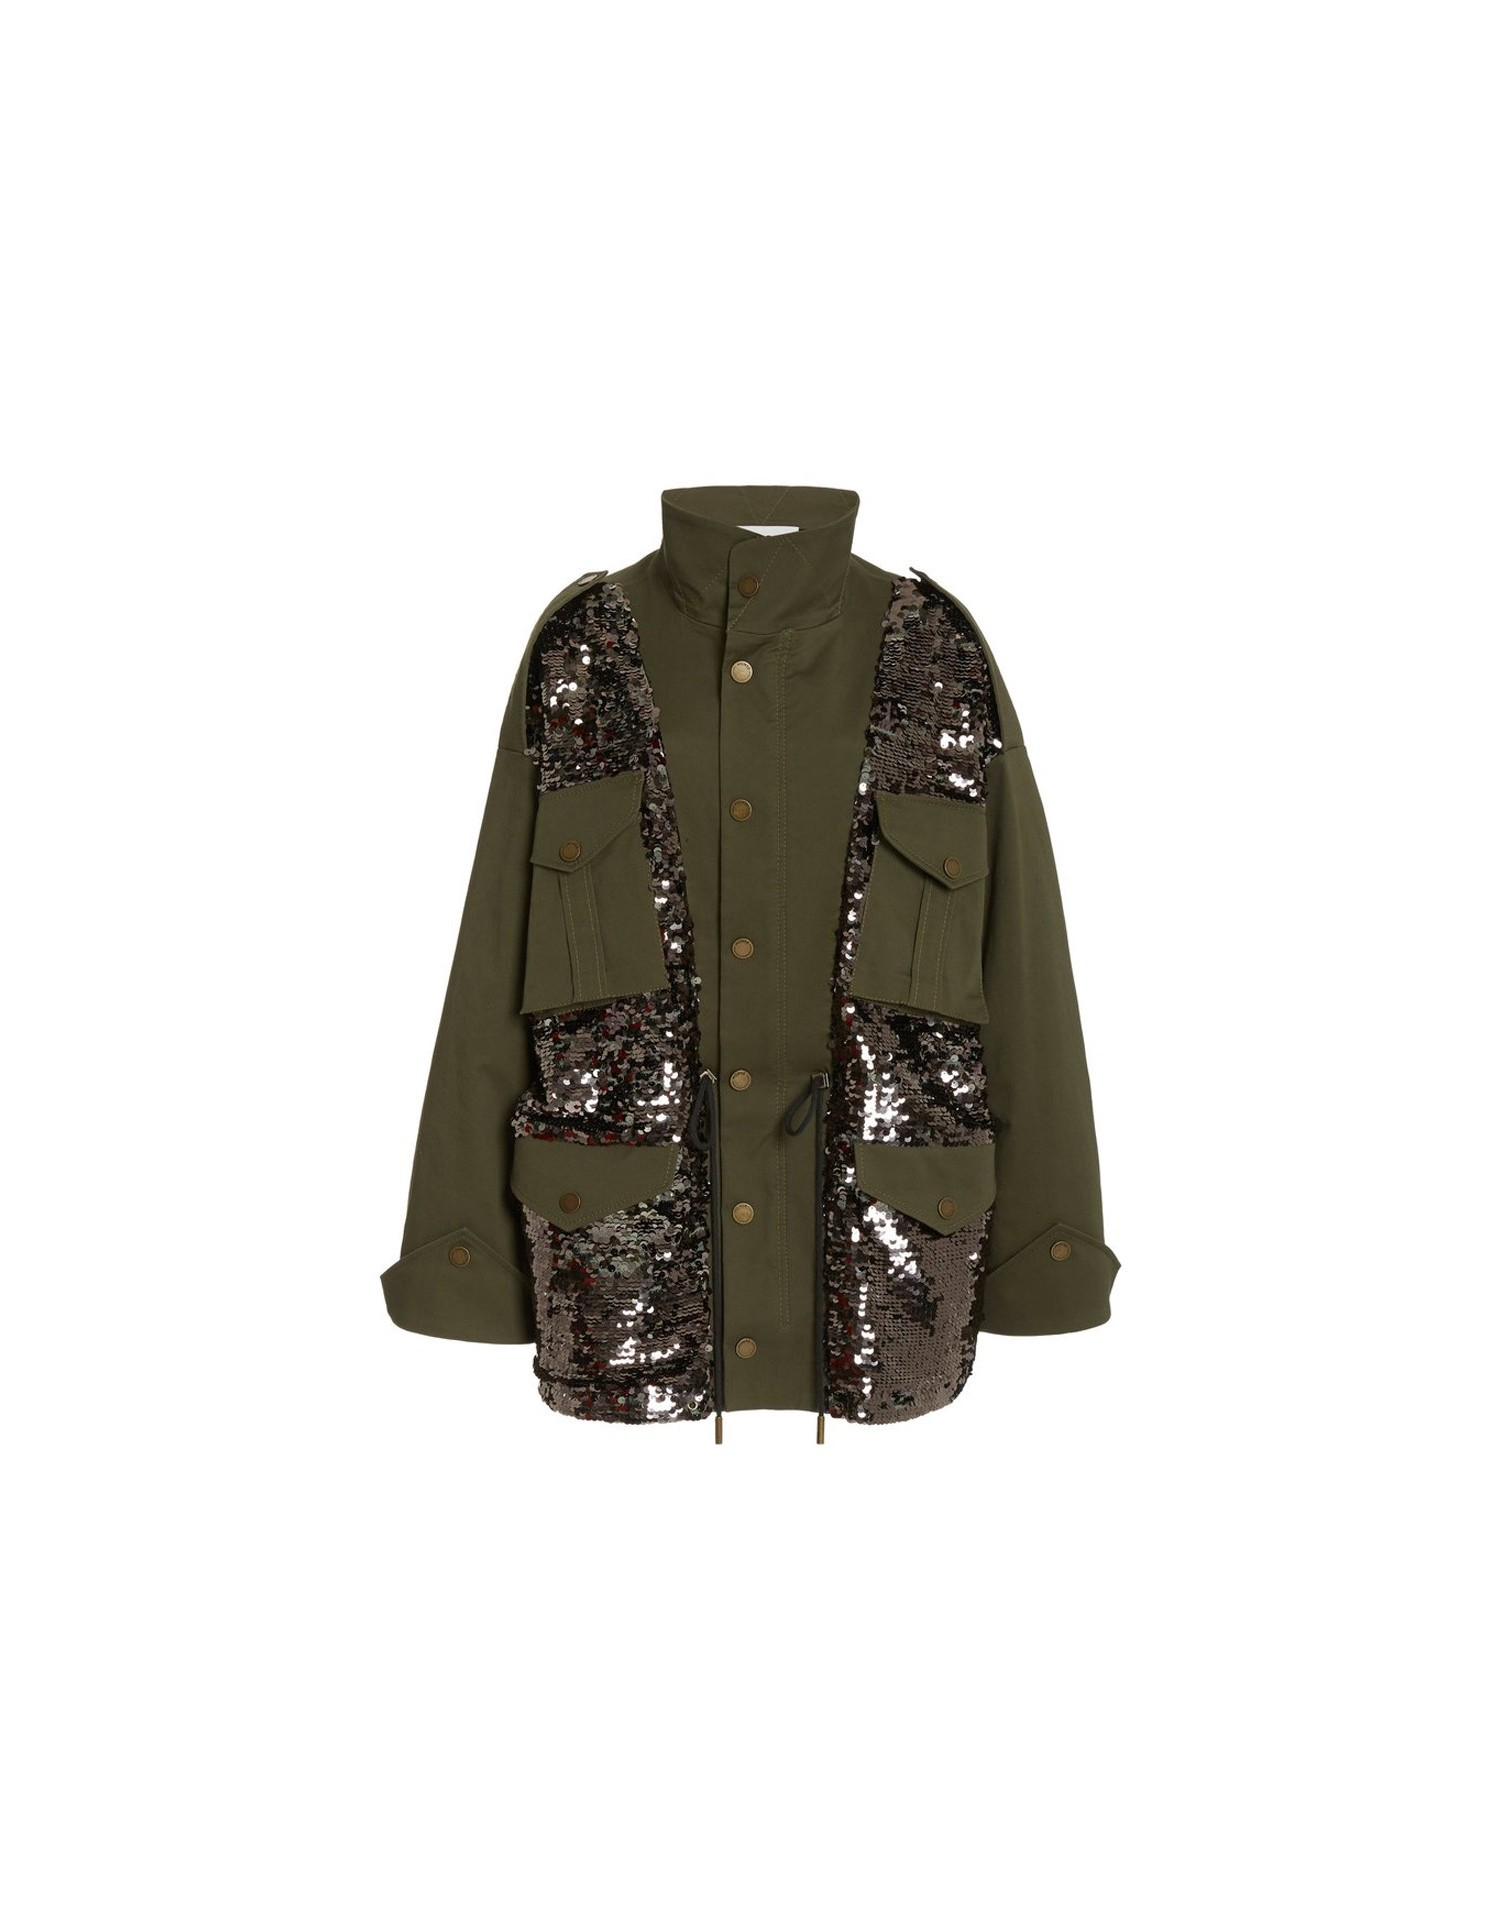 MONSE Sequined Field Jacket in Olive and Taupe Flat Front